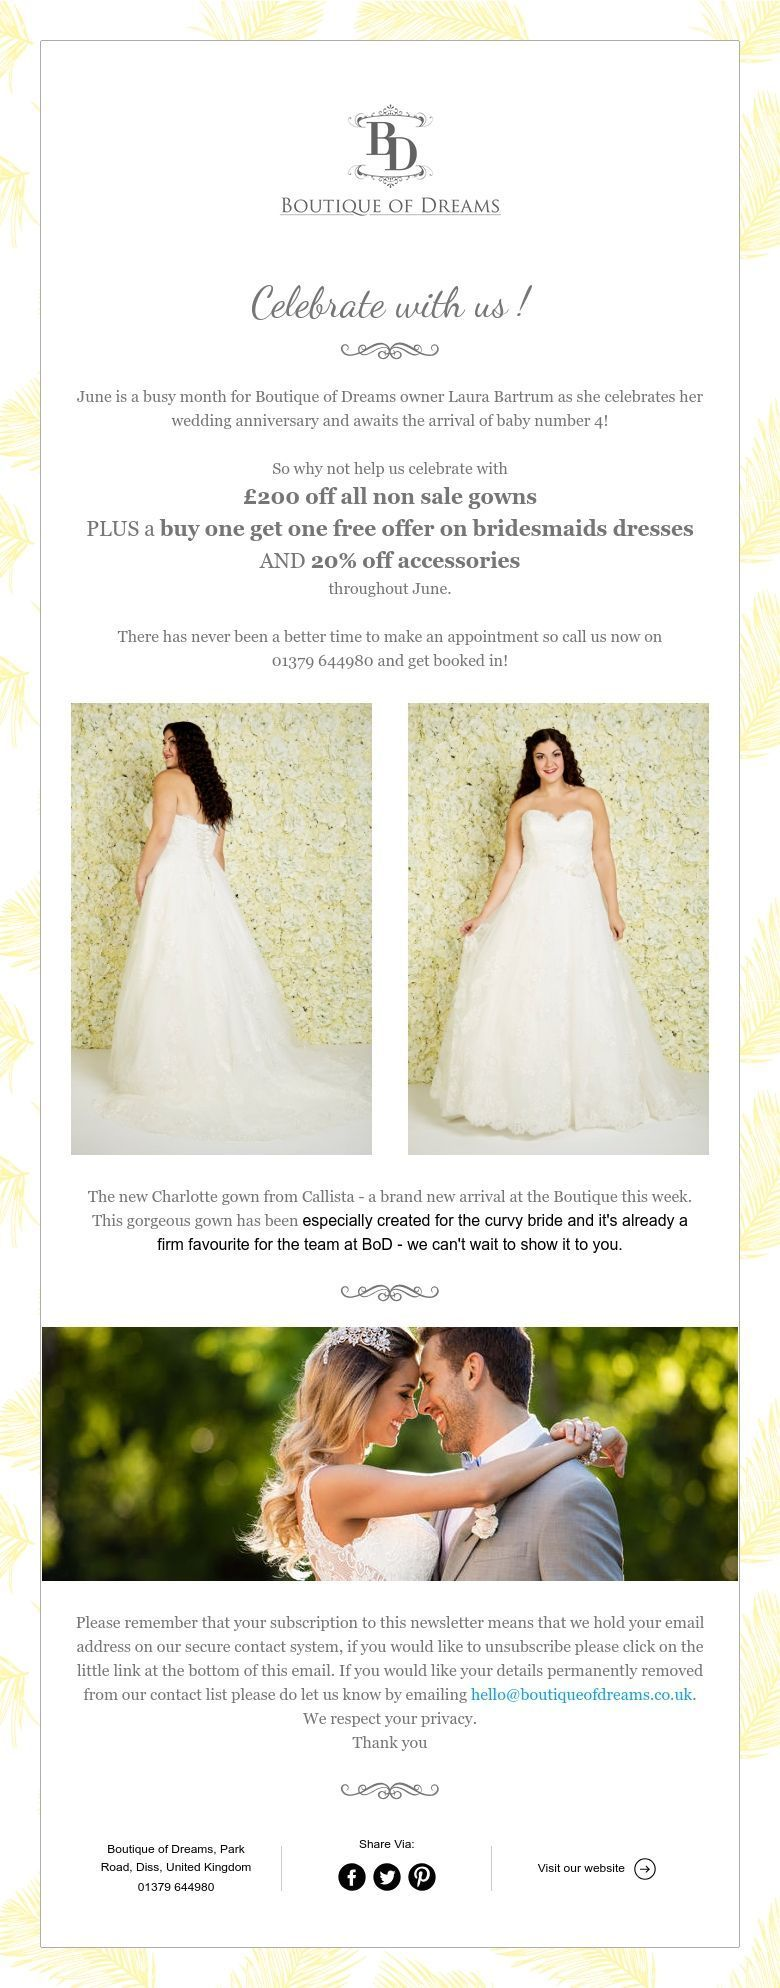 Wear your wedding dress on your anniversary  Boutique of Dreams BoDbridalwear on Pinterest